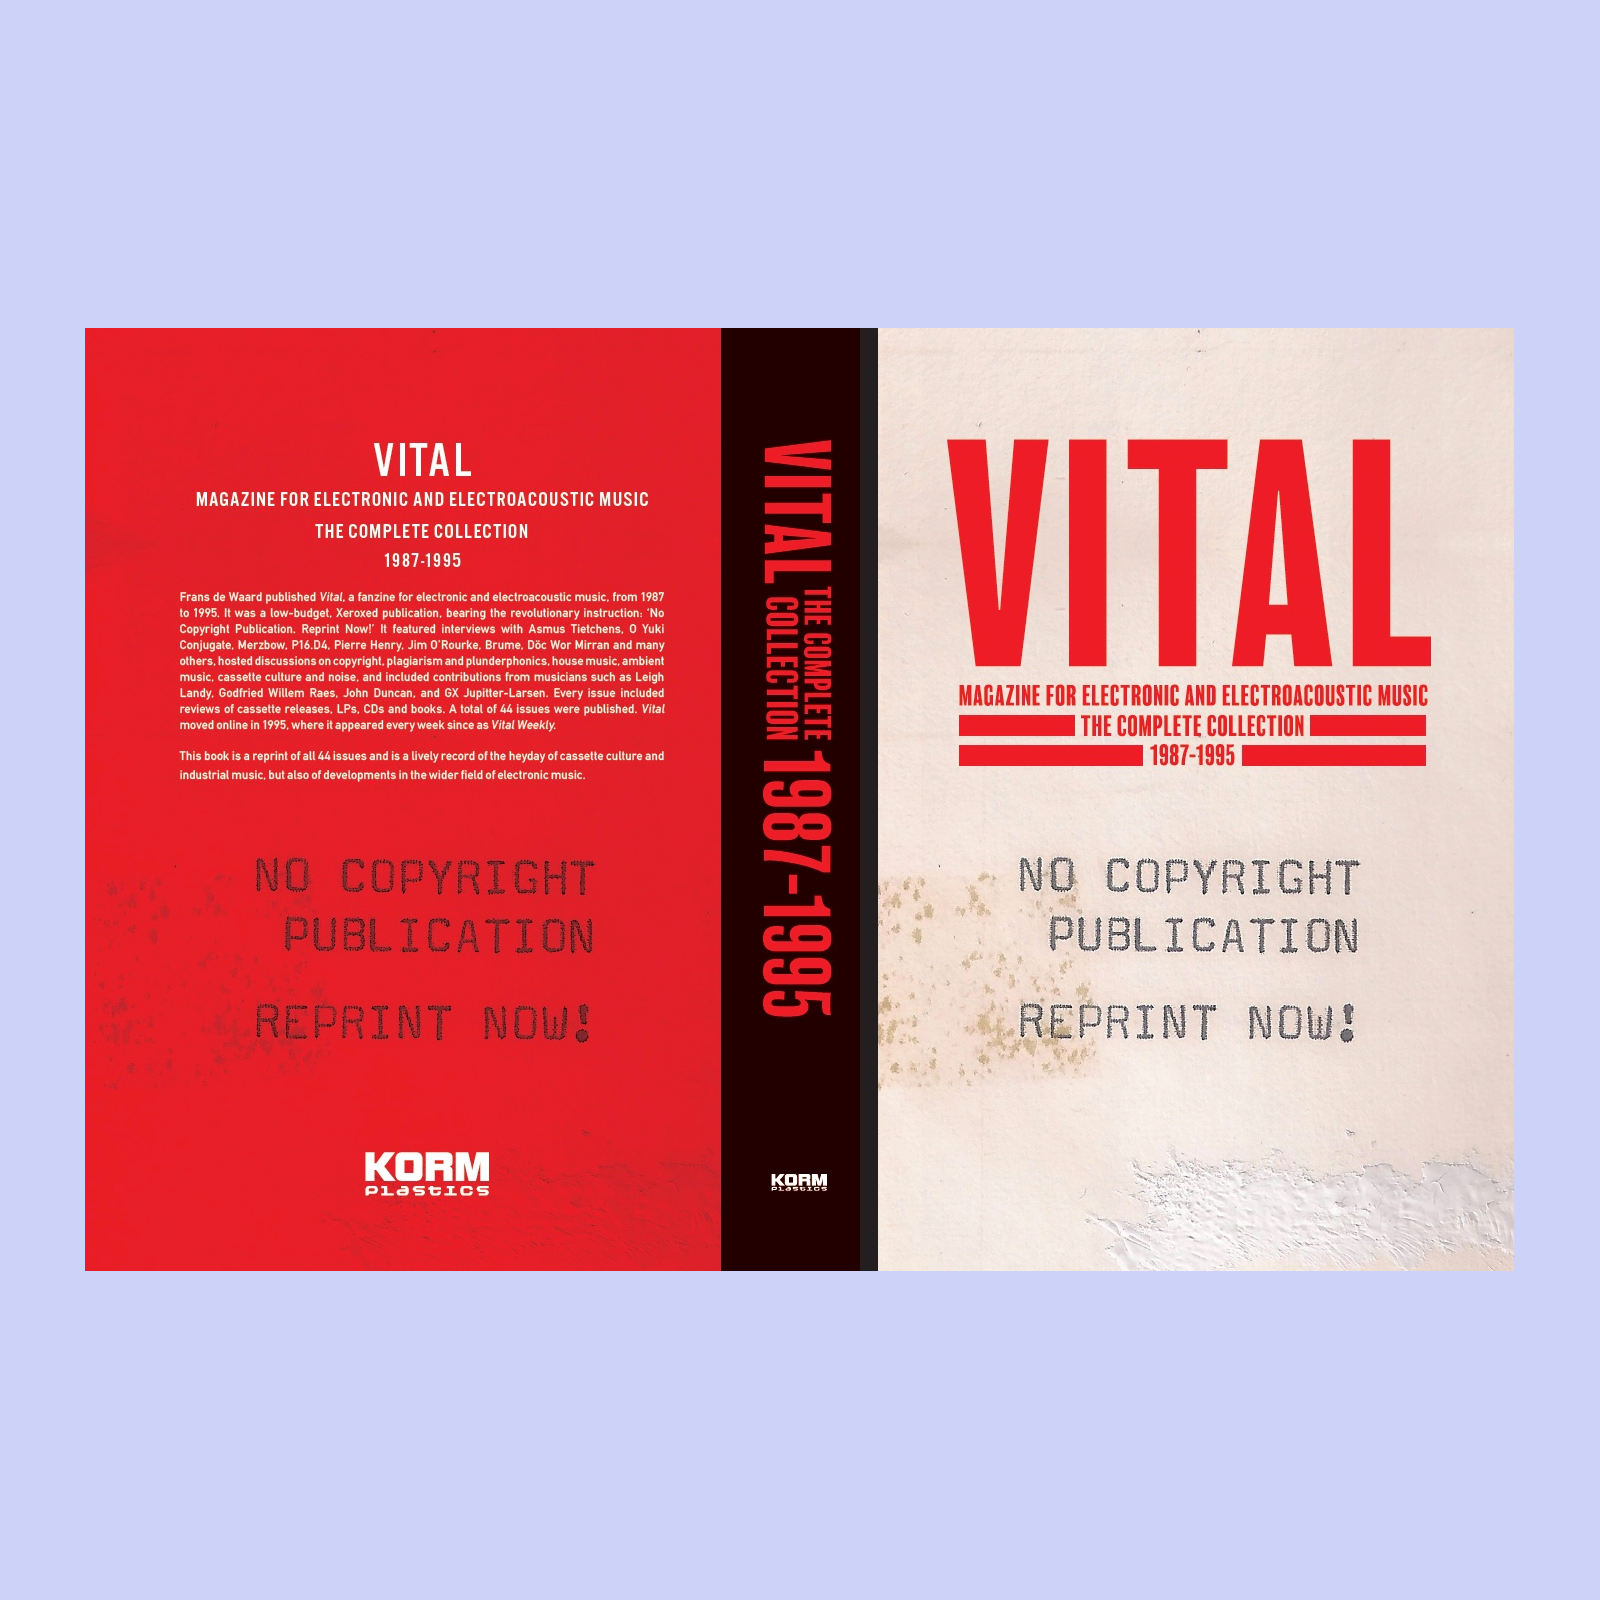 Vital - The Complete Collection 1987-1995